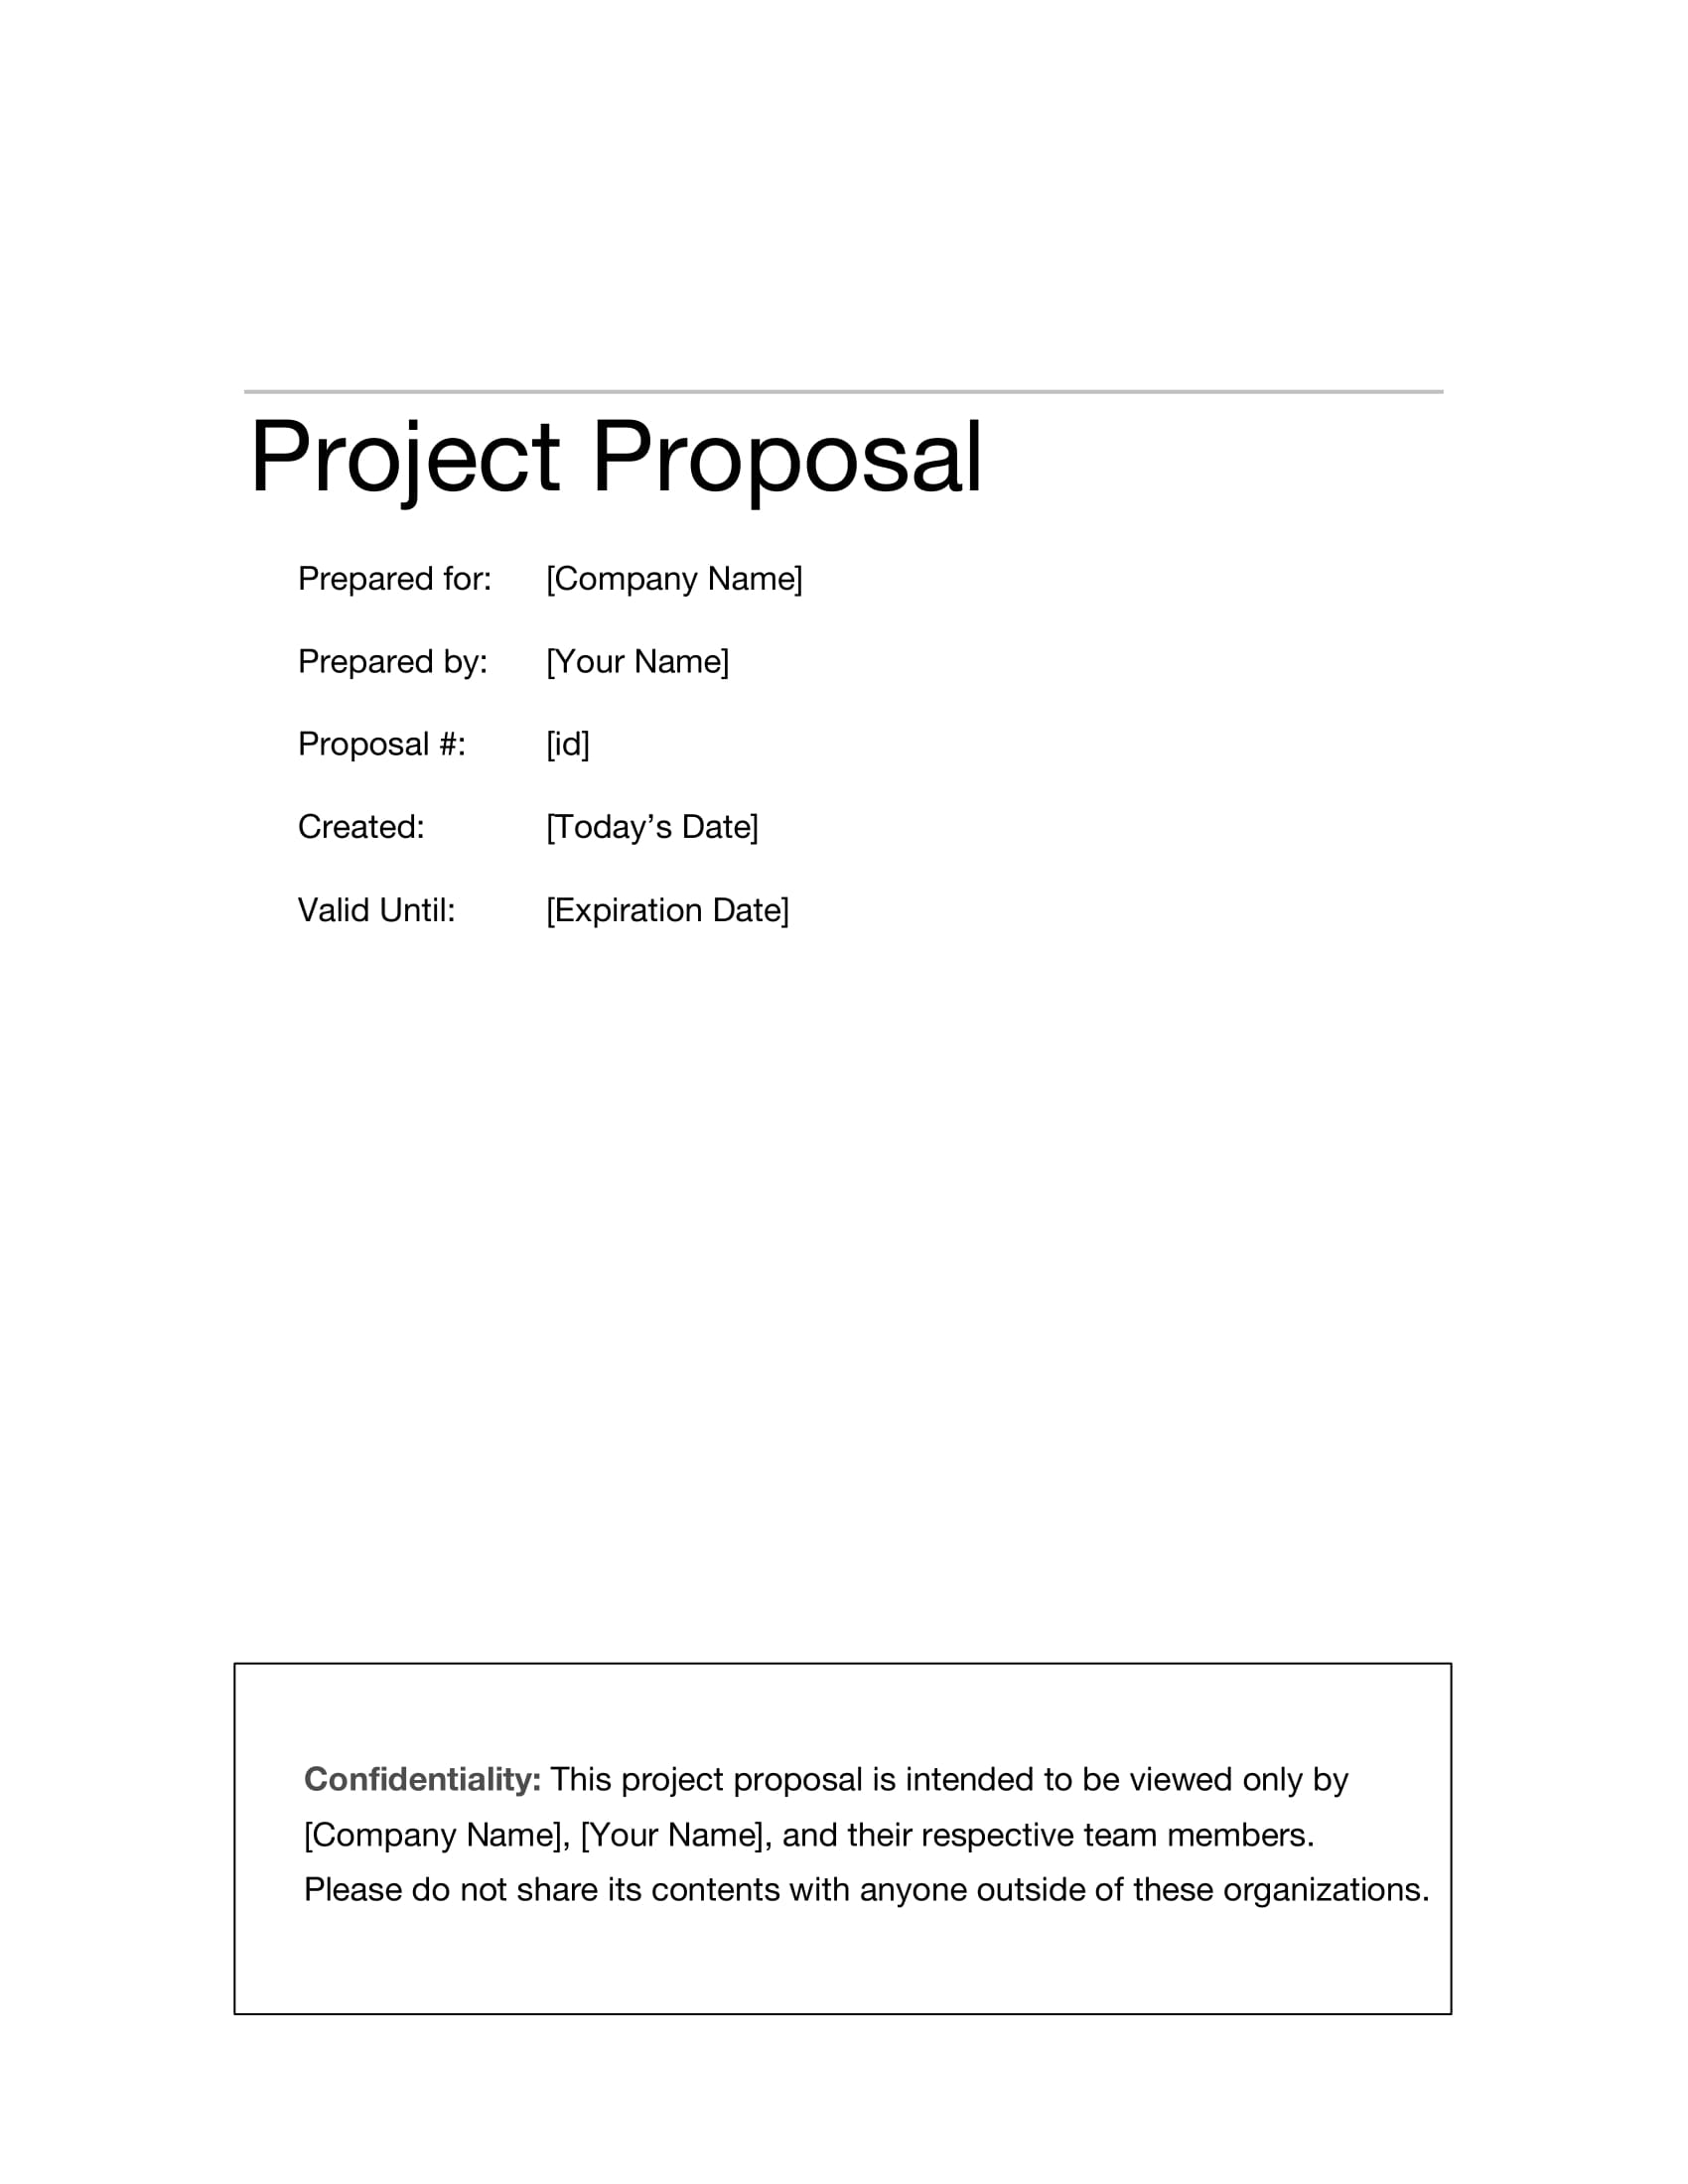 10+ Information Technology Project Proposal Examples - PDF, Word